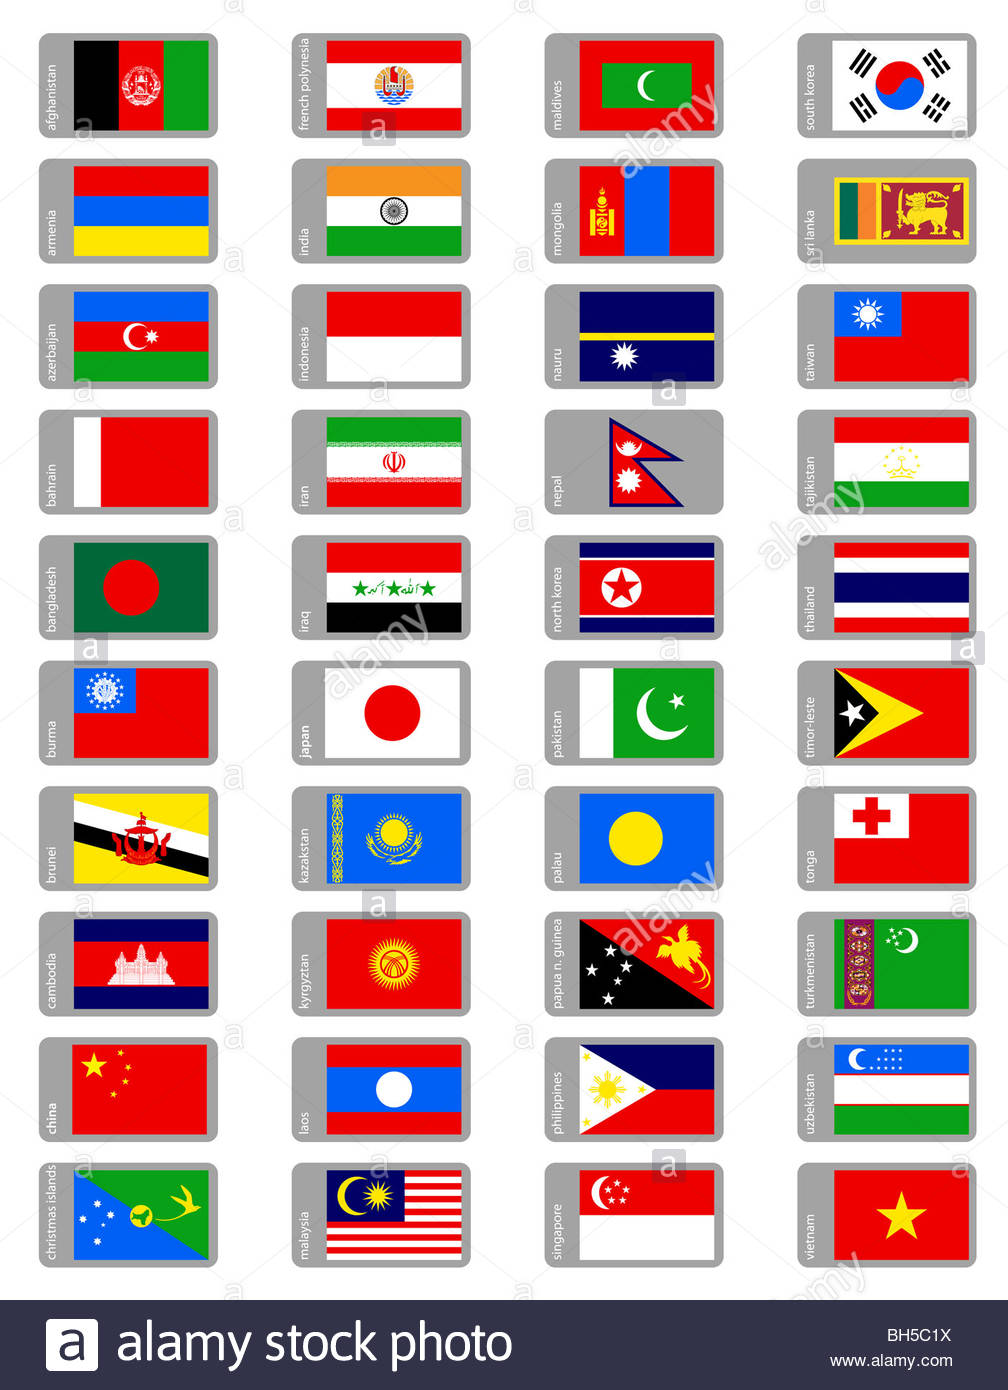 country flags stock photos country flags stock images alamy